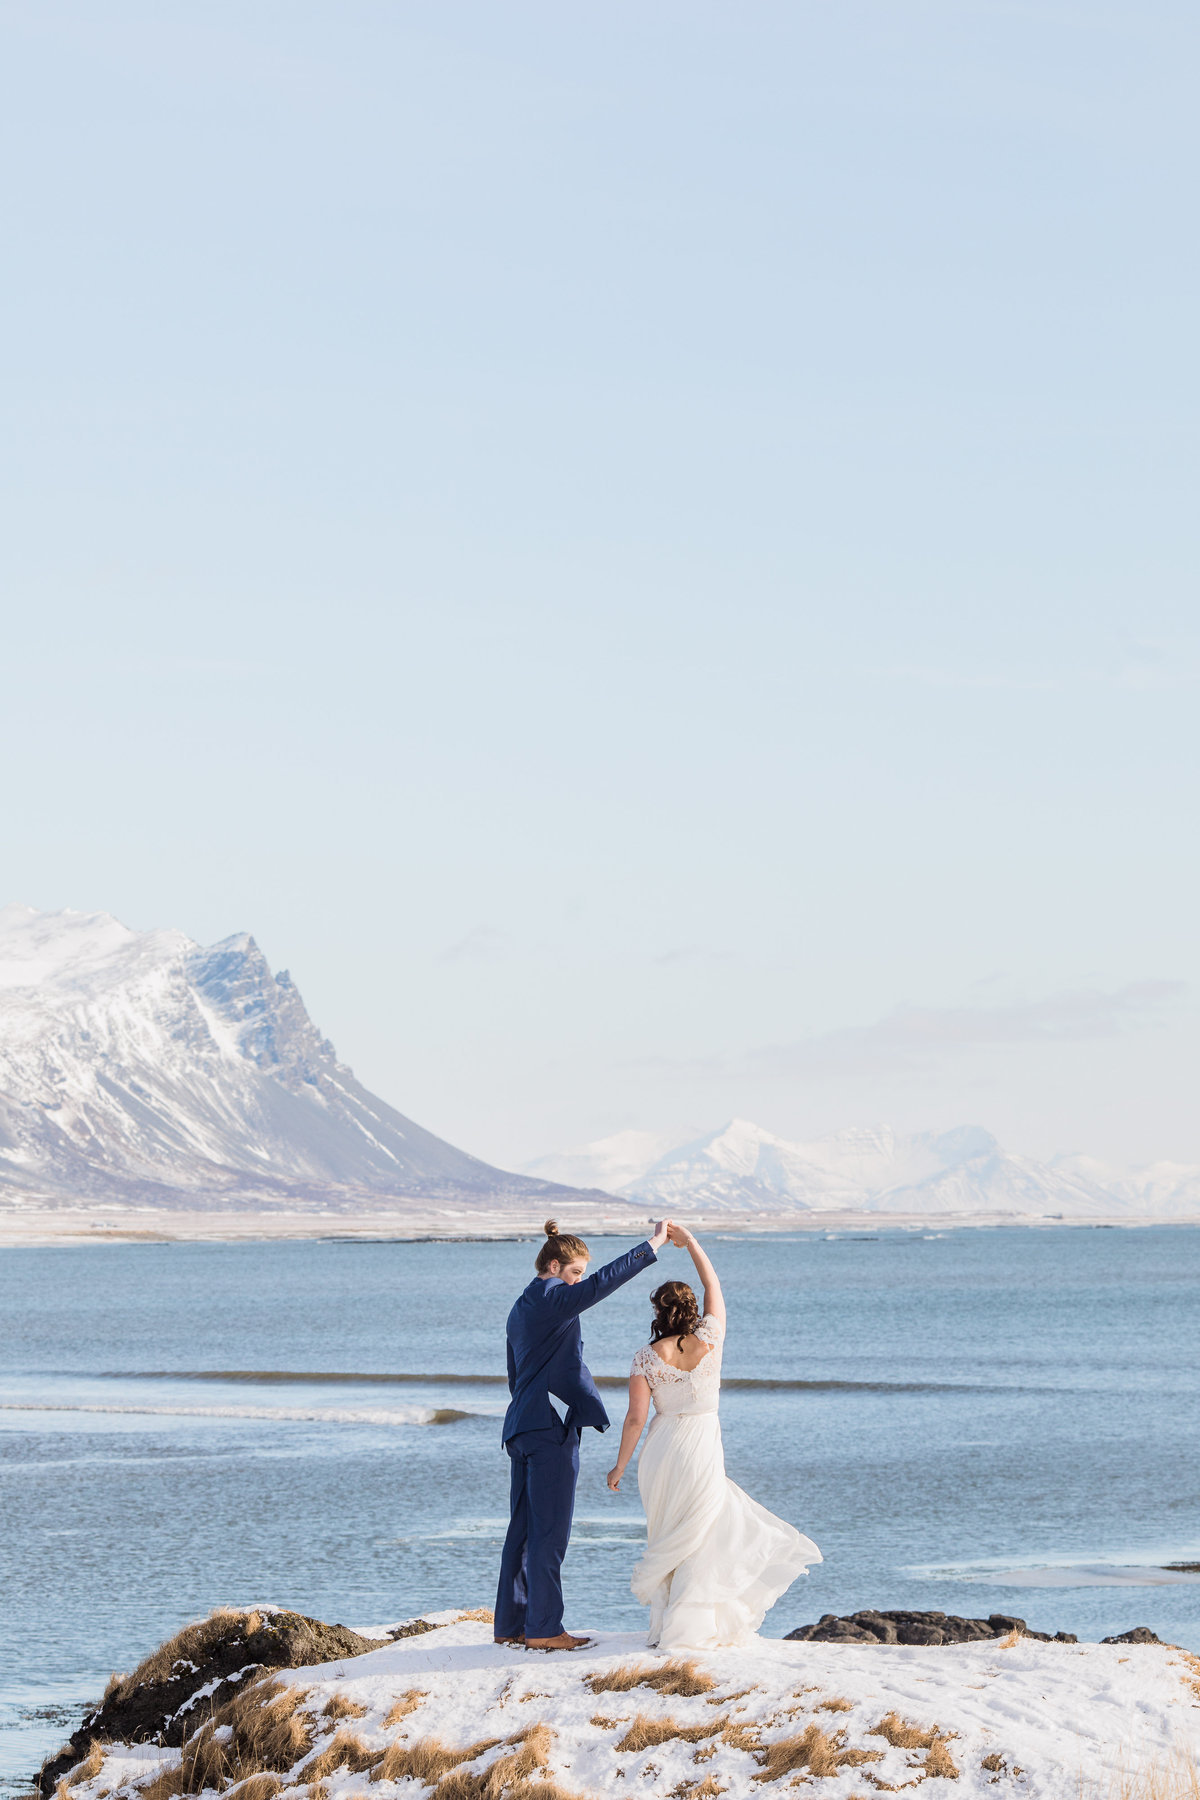 IcelandWedding_OliviaScott_CatherineRhodesPhotography-629-Edit